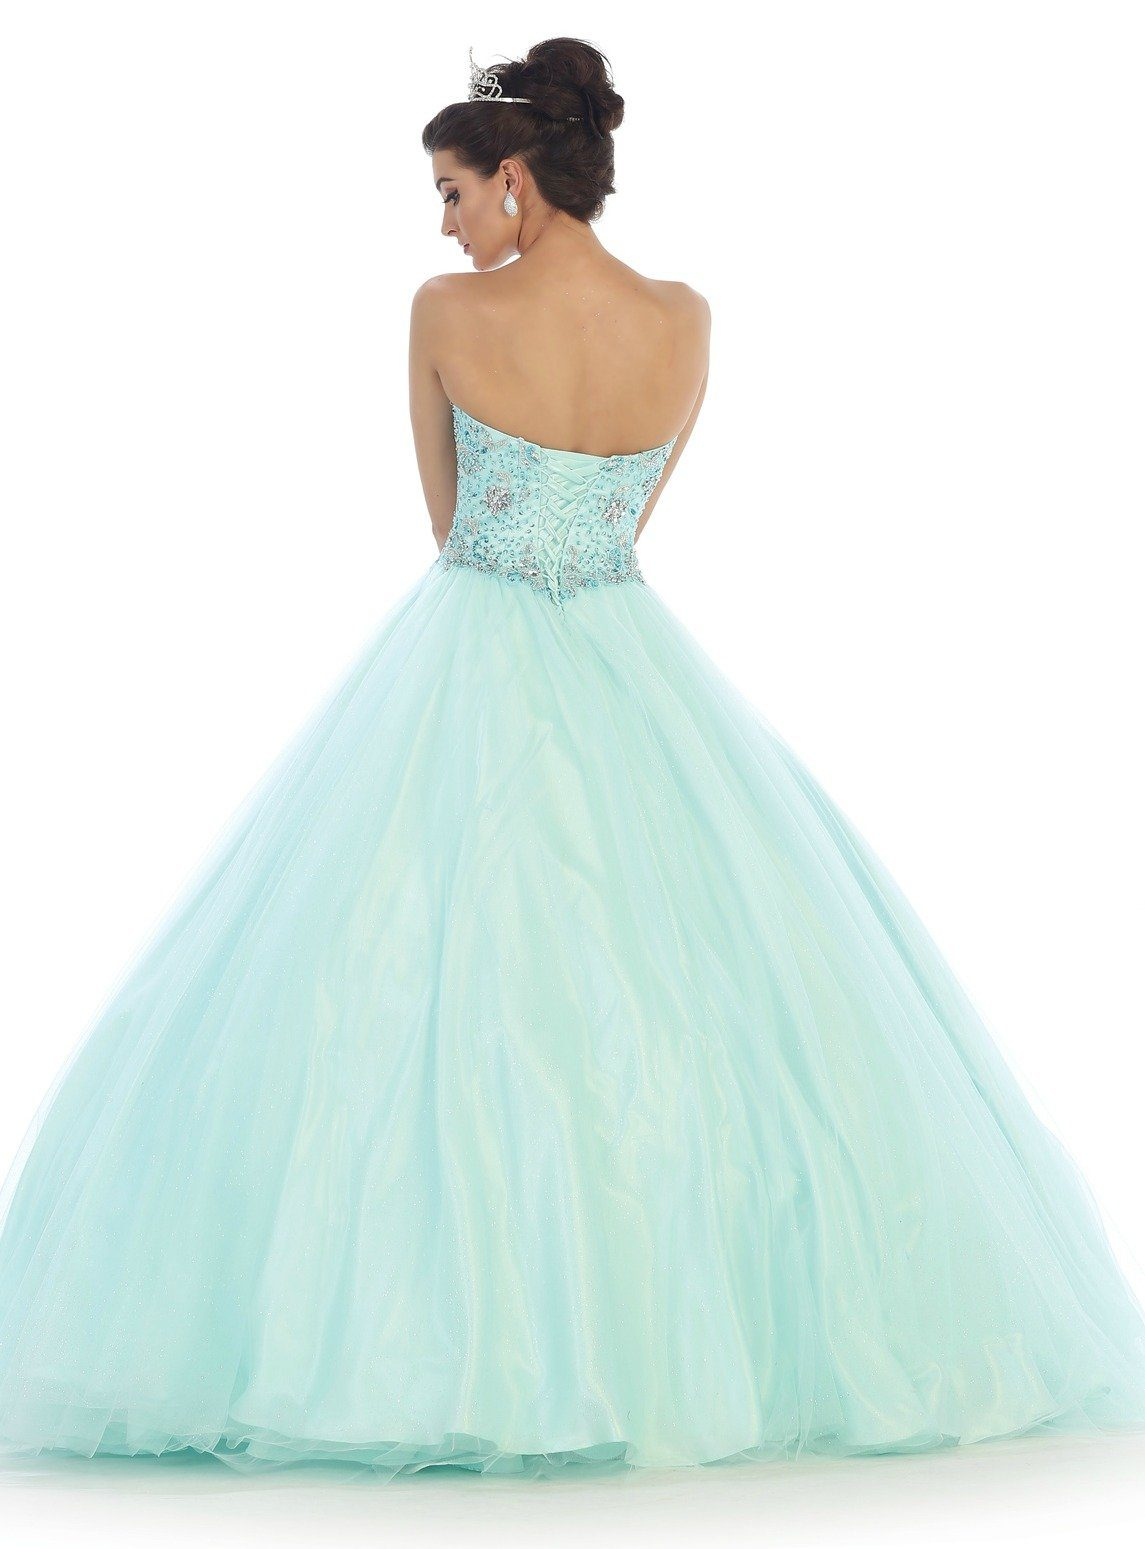 Long Strapless Beaded Mint Ball Gown